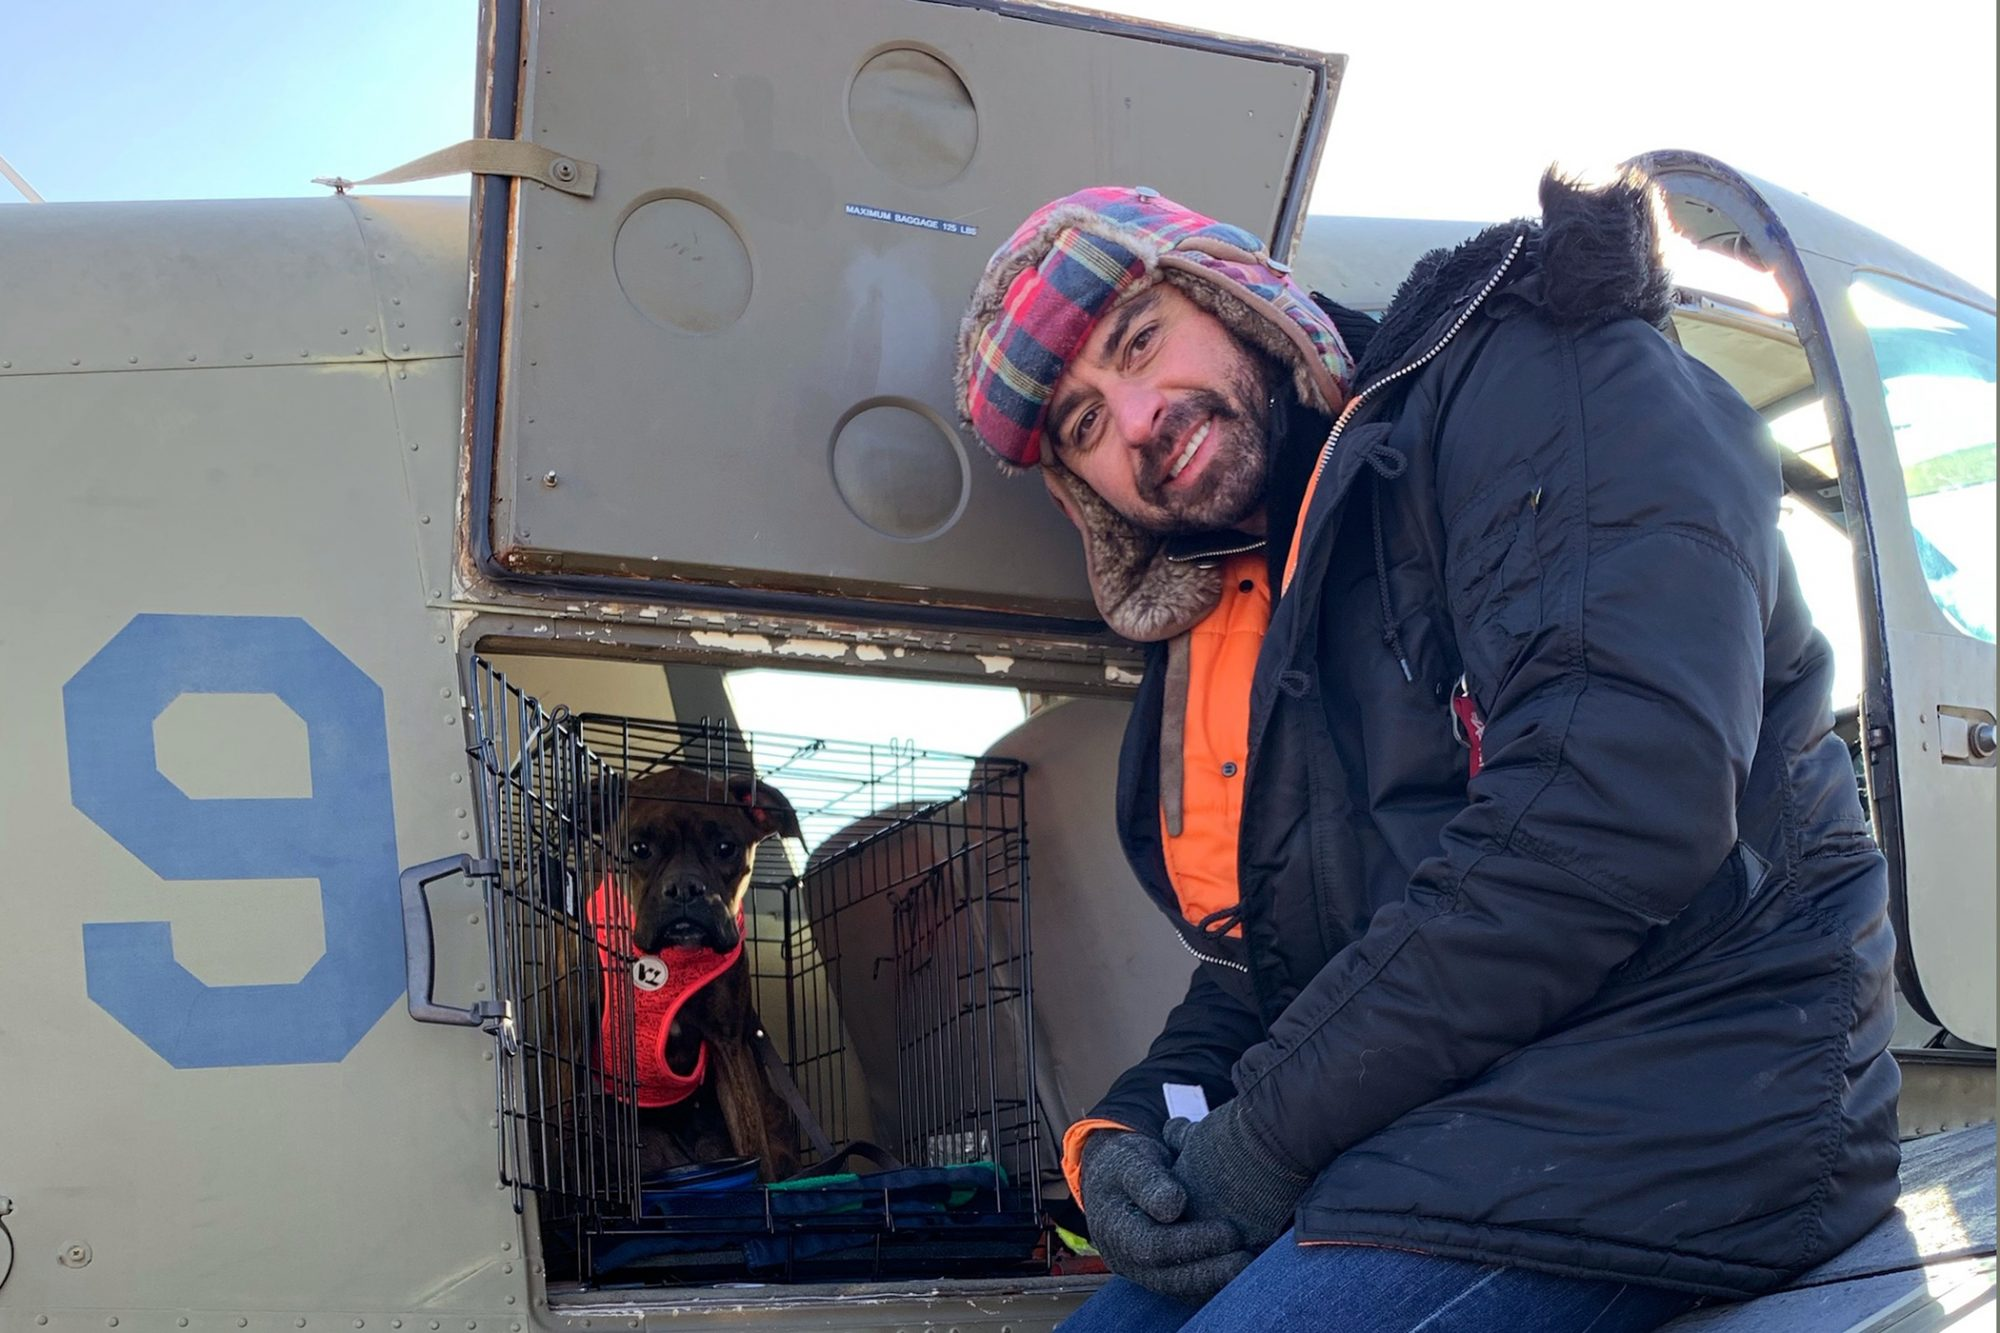 Eduard with rescue dog at plane door